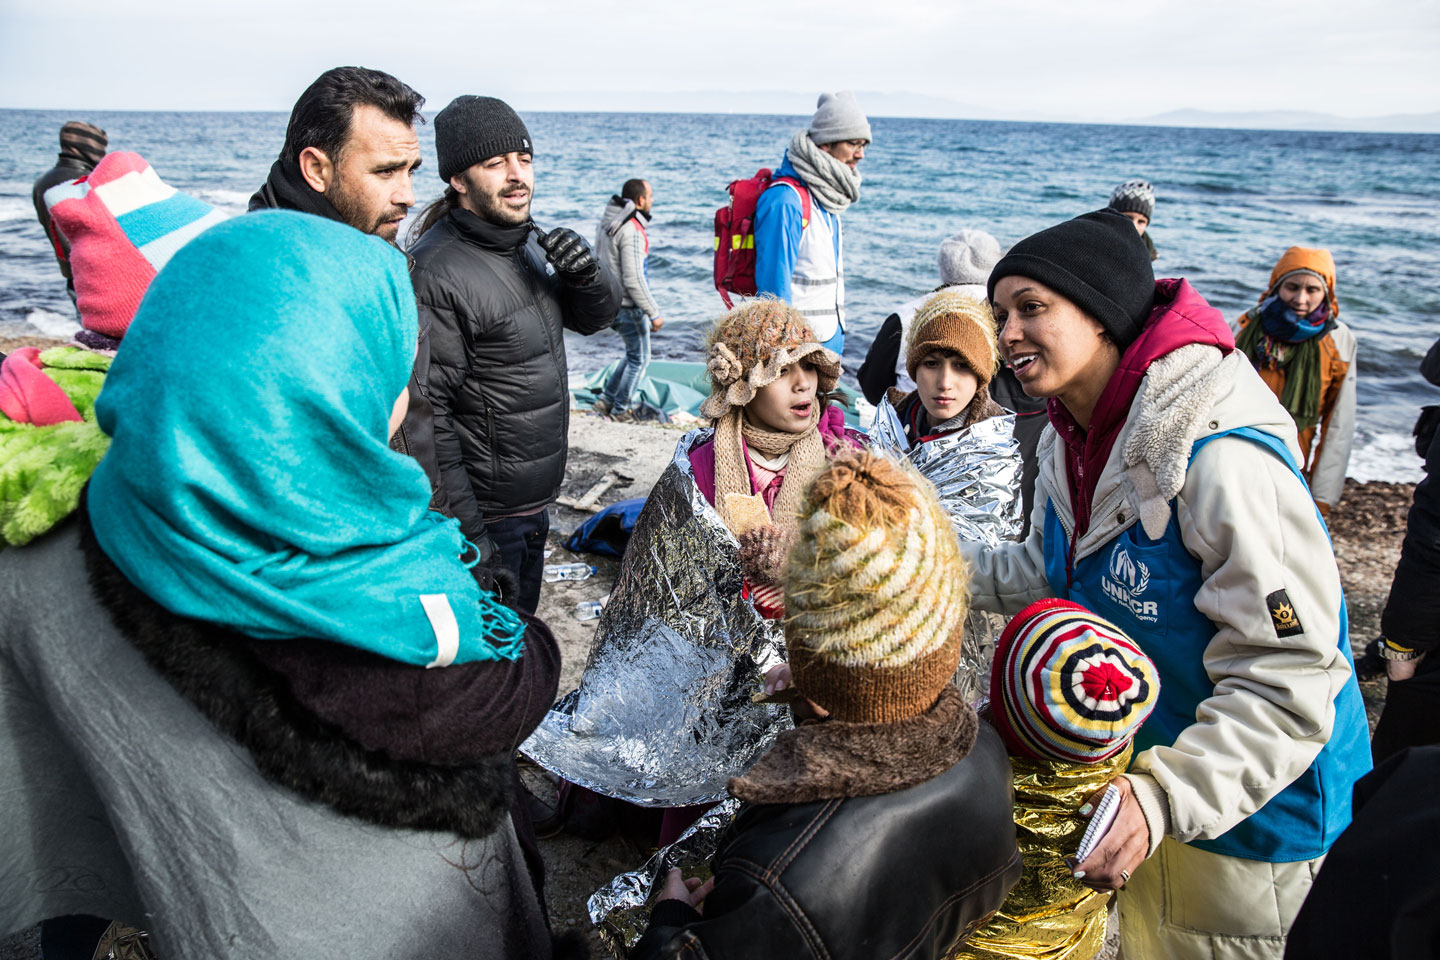 Photographer: Hereward Holland |A UNHCR staff member talks to a family of refugees who have just arrived on the Greek island of Lesbos after crossing the short stretch of sea from Turkey.